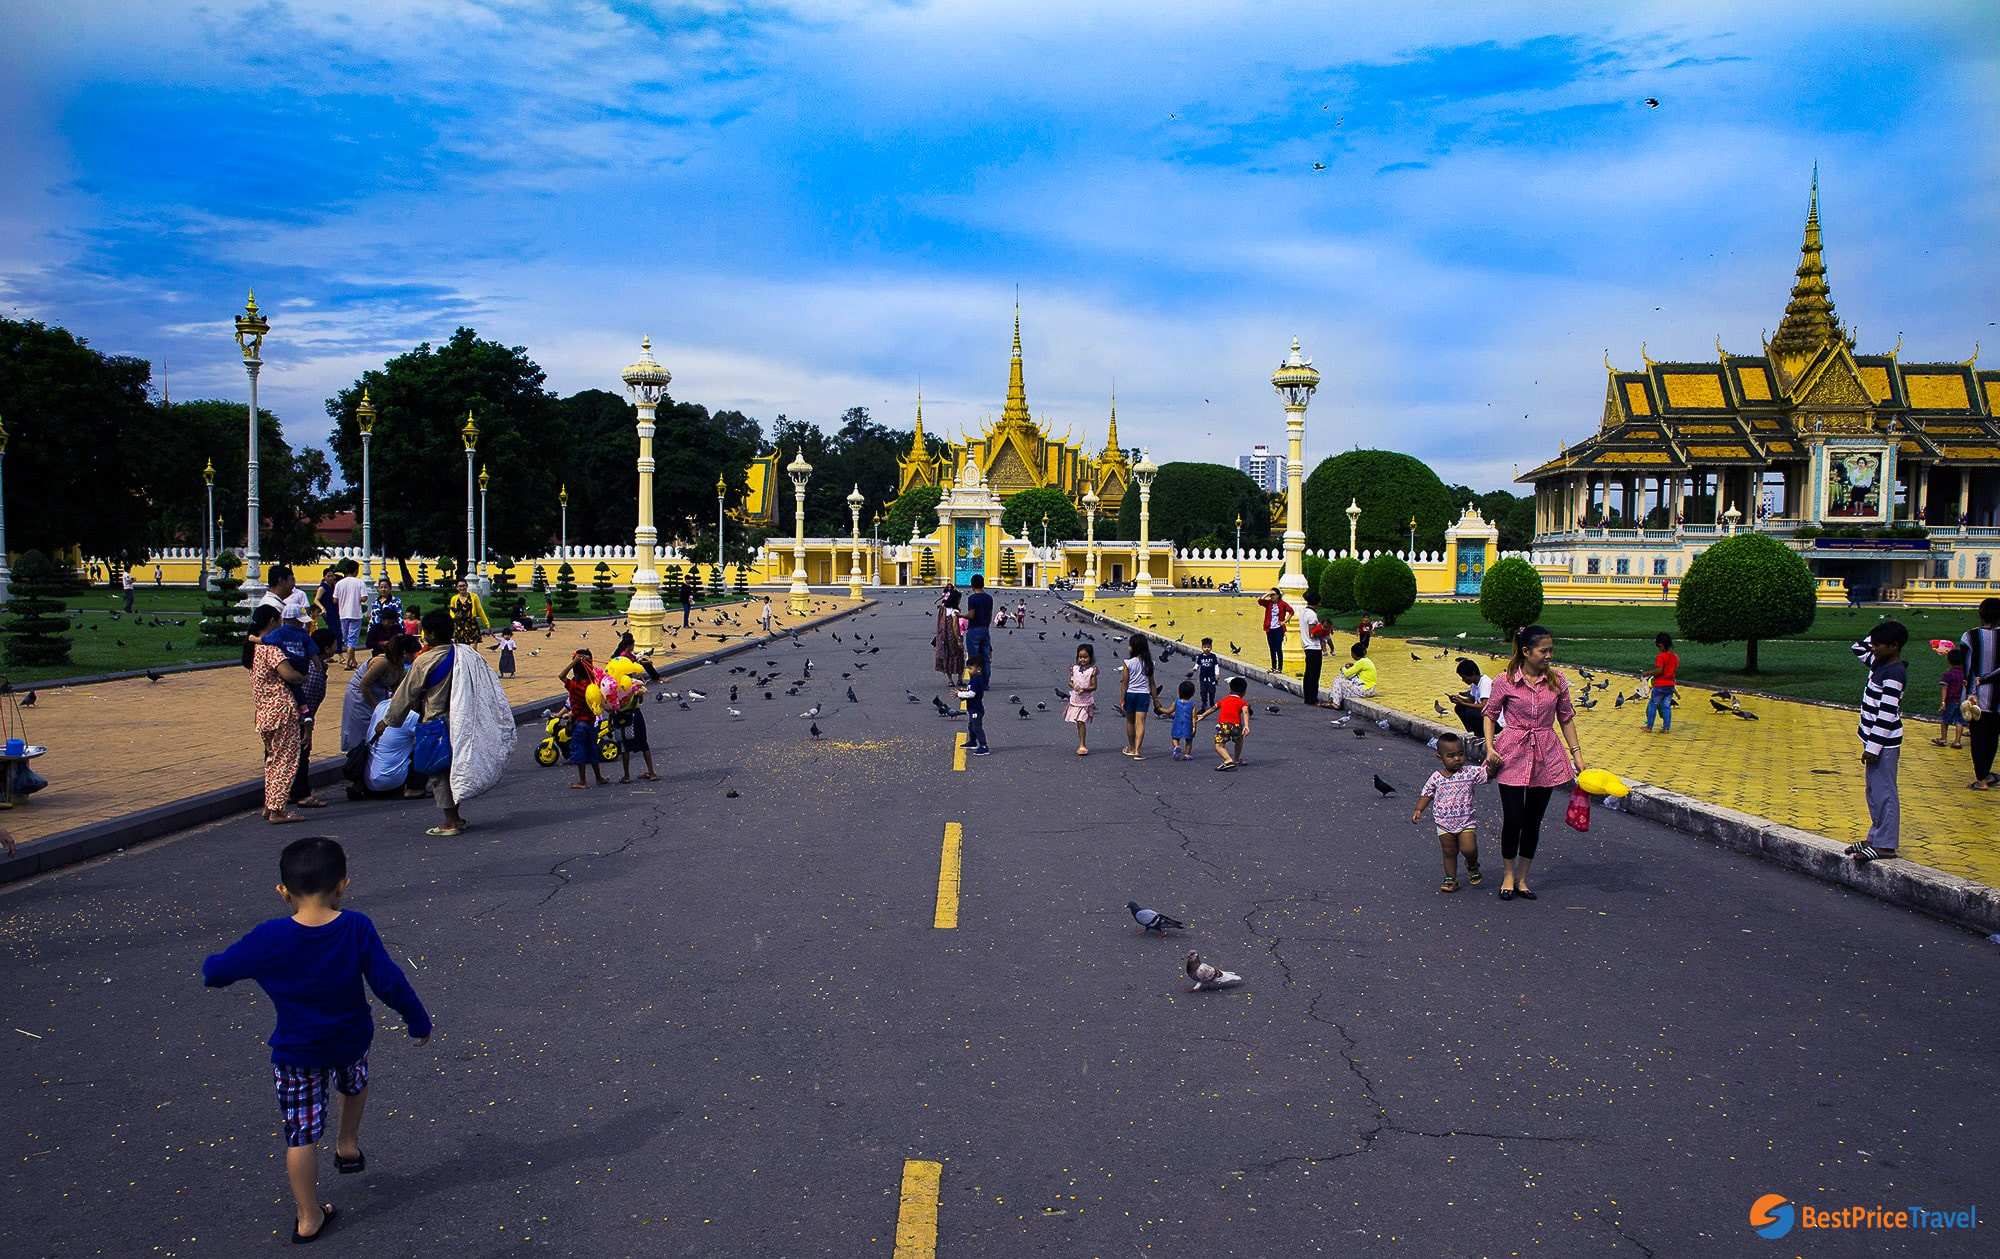 Square in front of Royal Palace